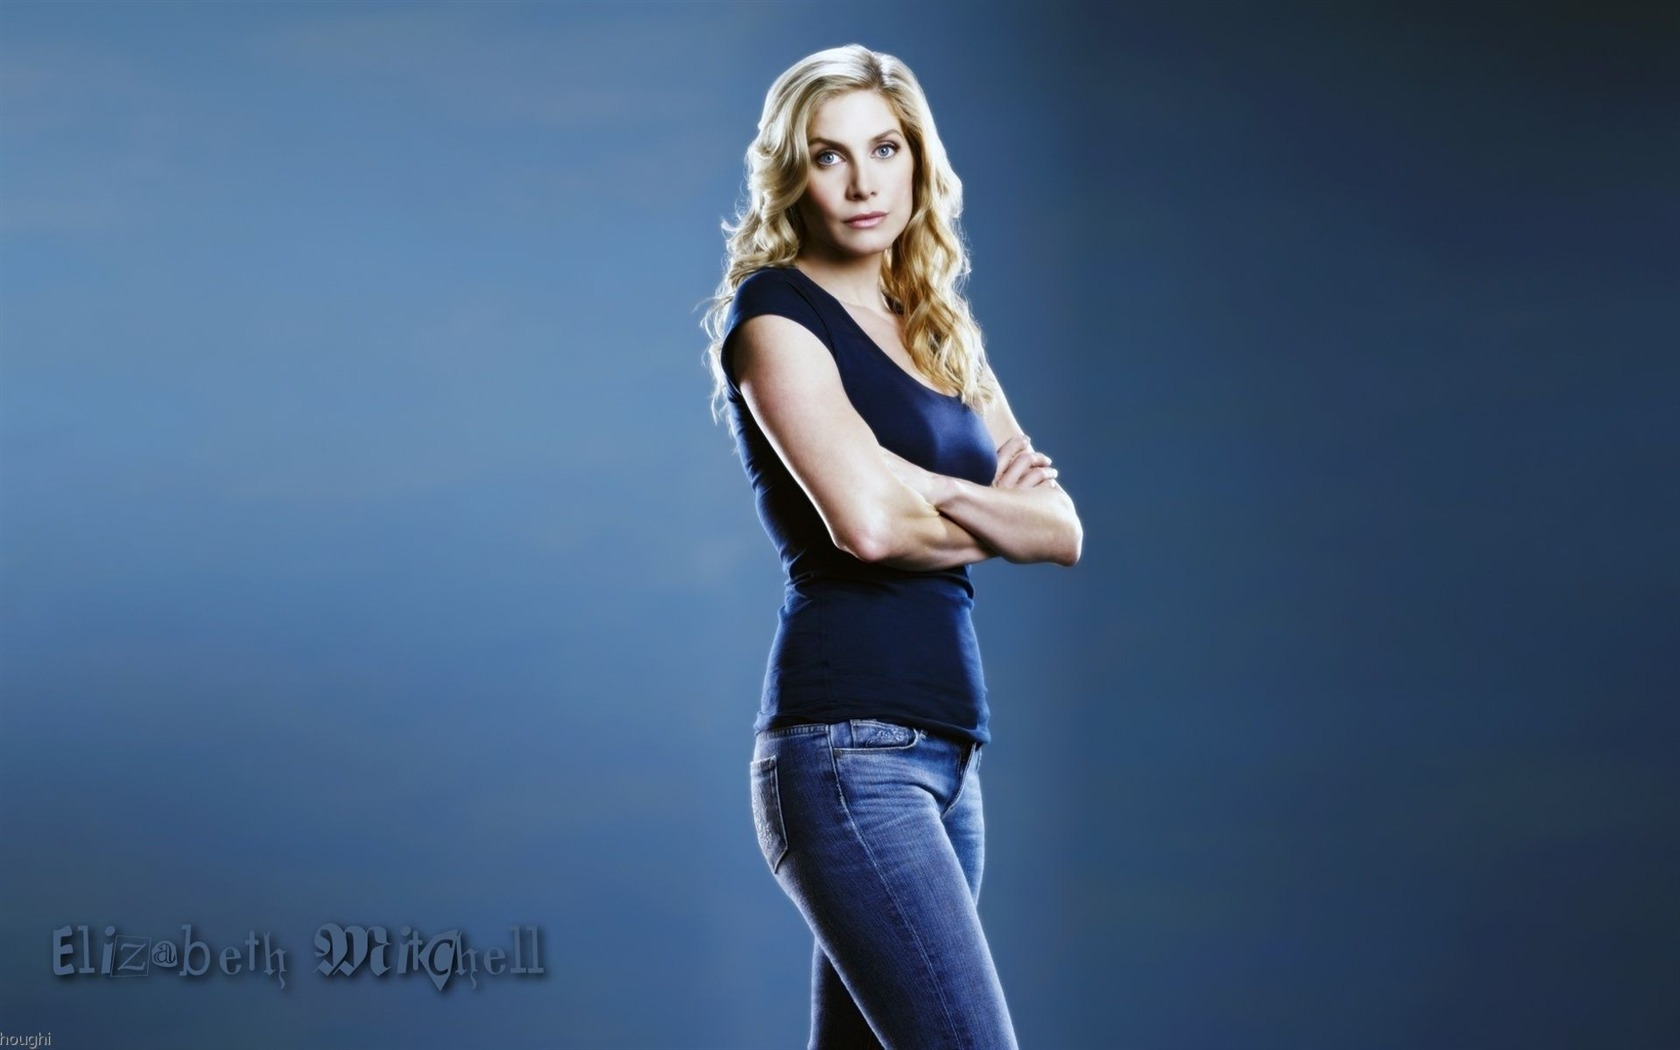 Elizabeth Mitchell #010 - 1680x1050 Wallpapers Pictures Photos Images